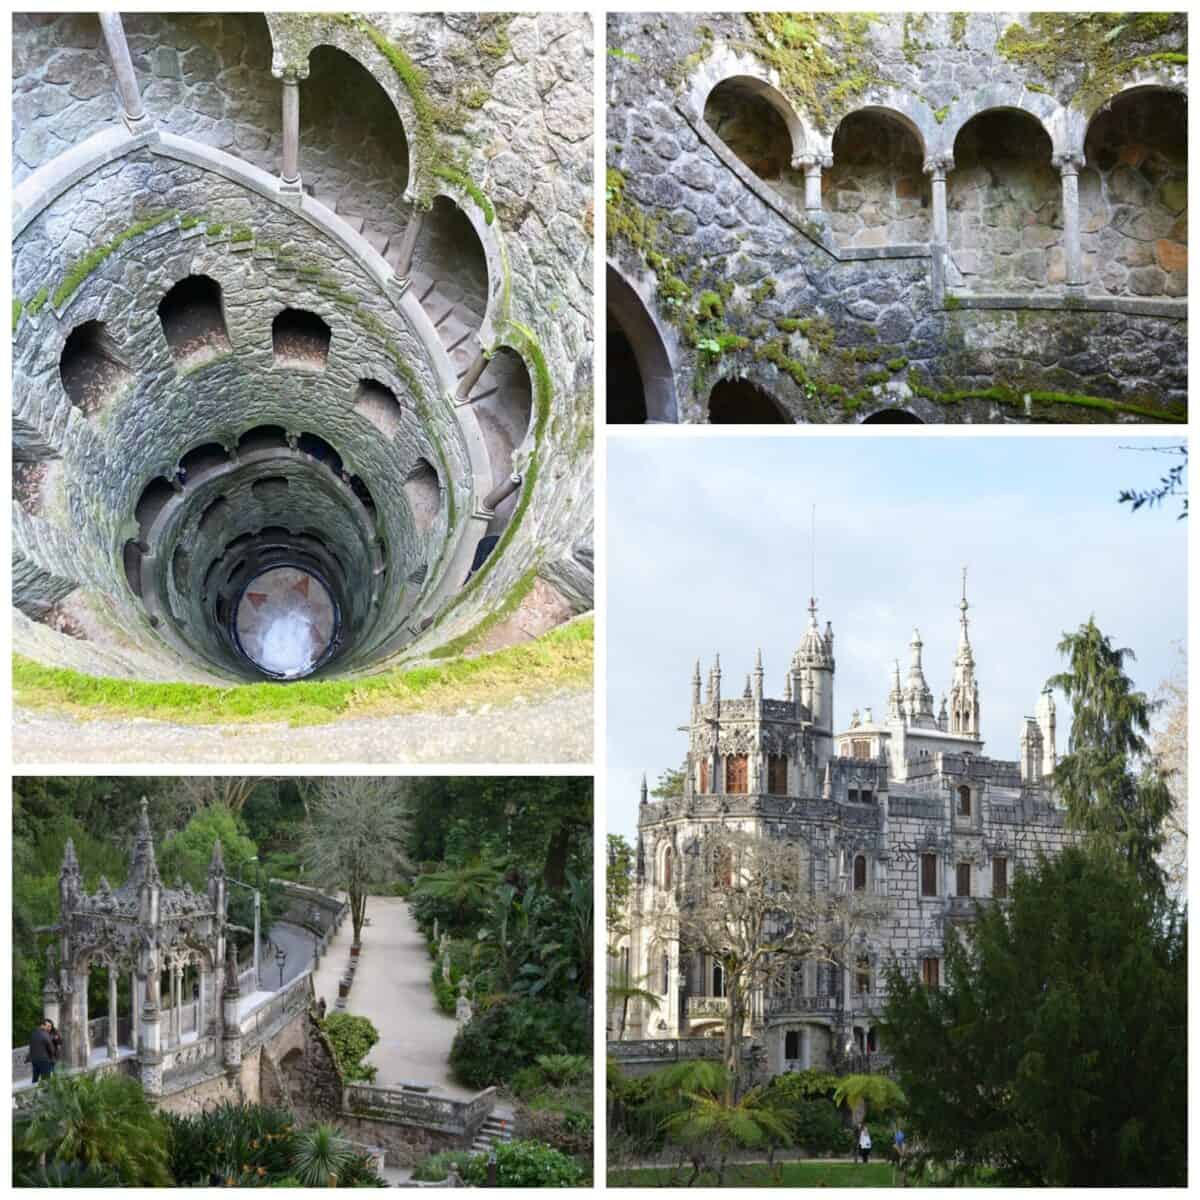 Quinta da Regaleira and the Initiation Well